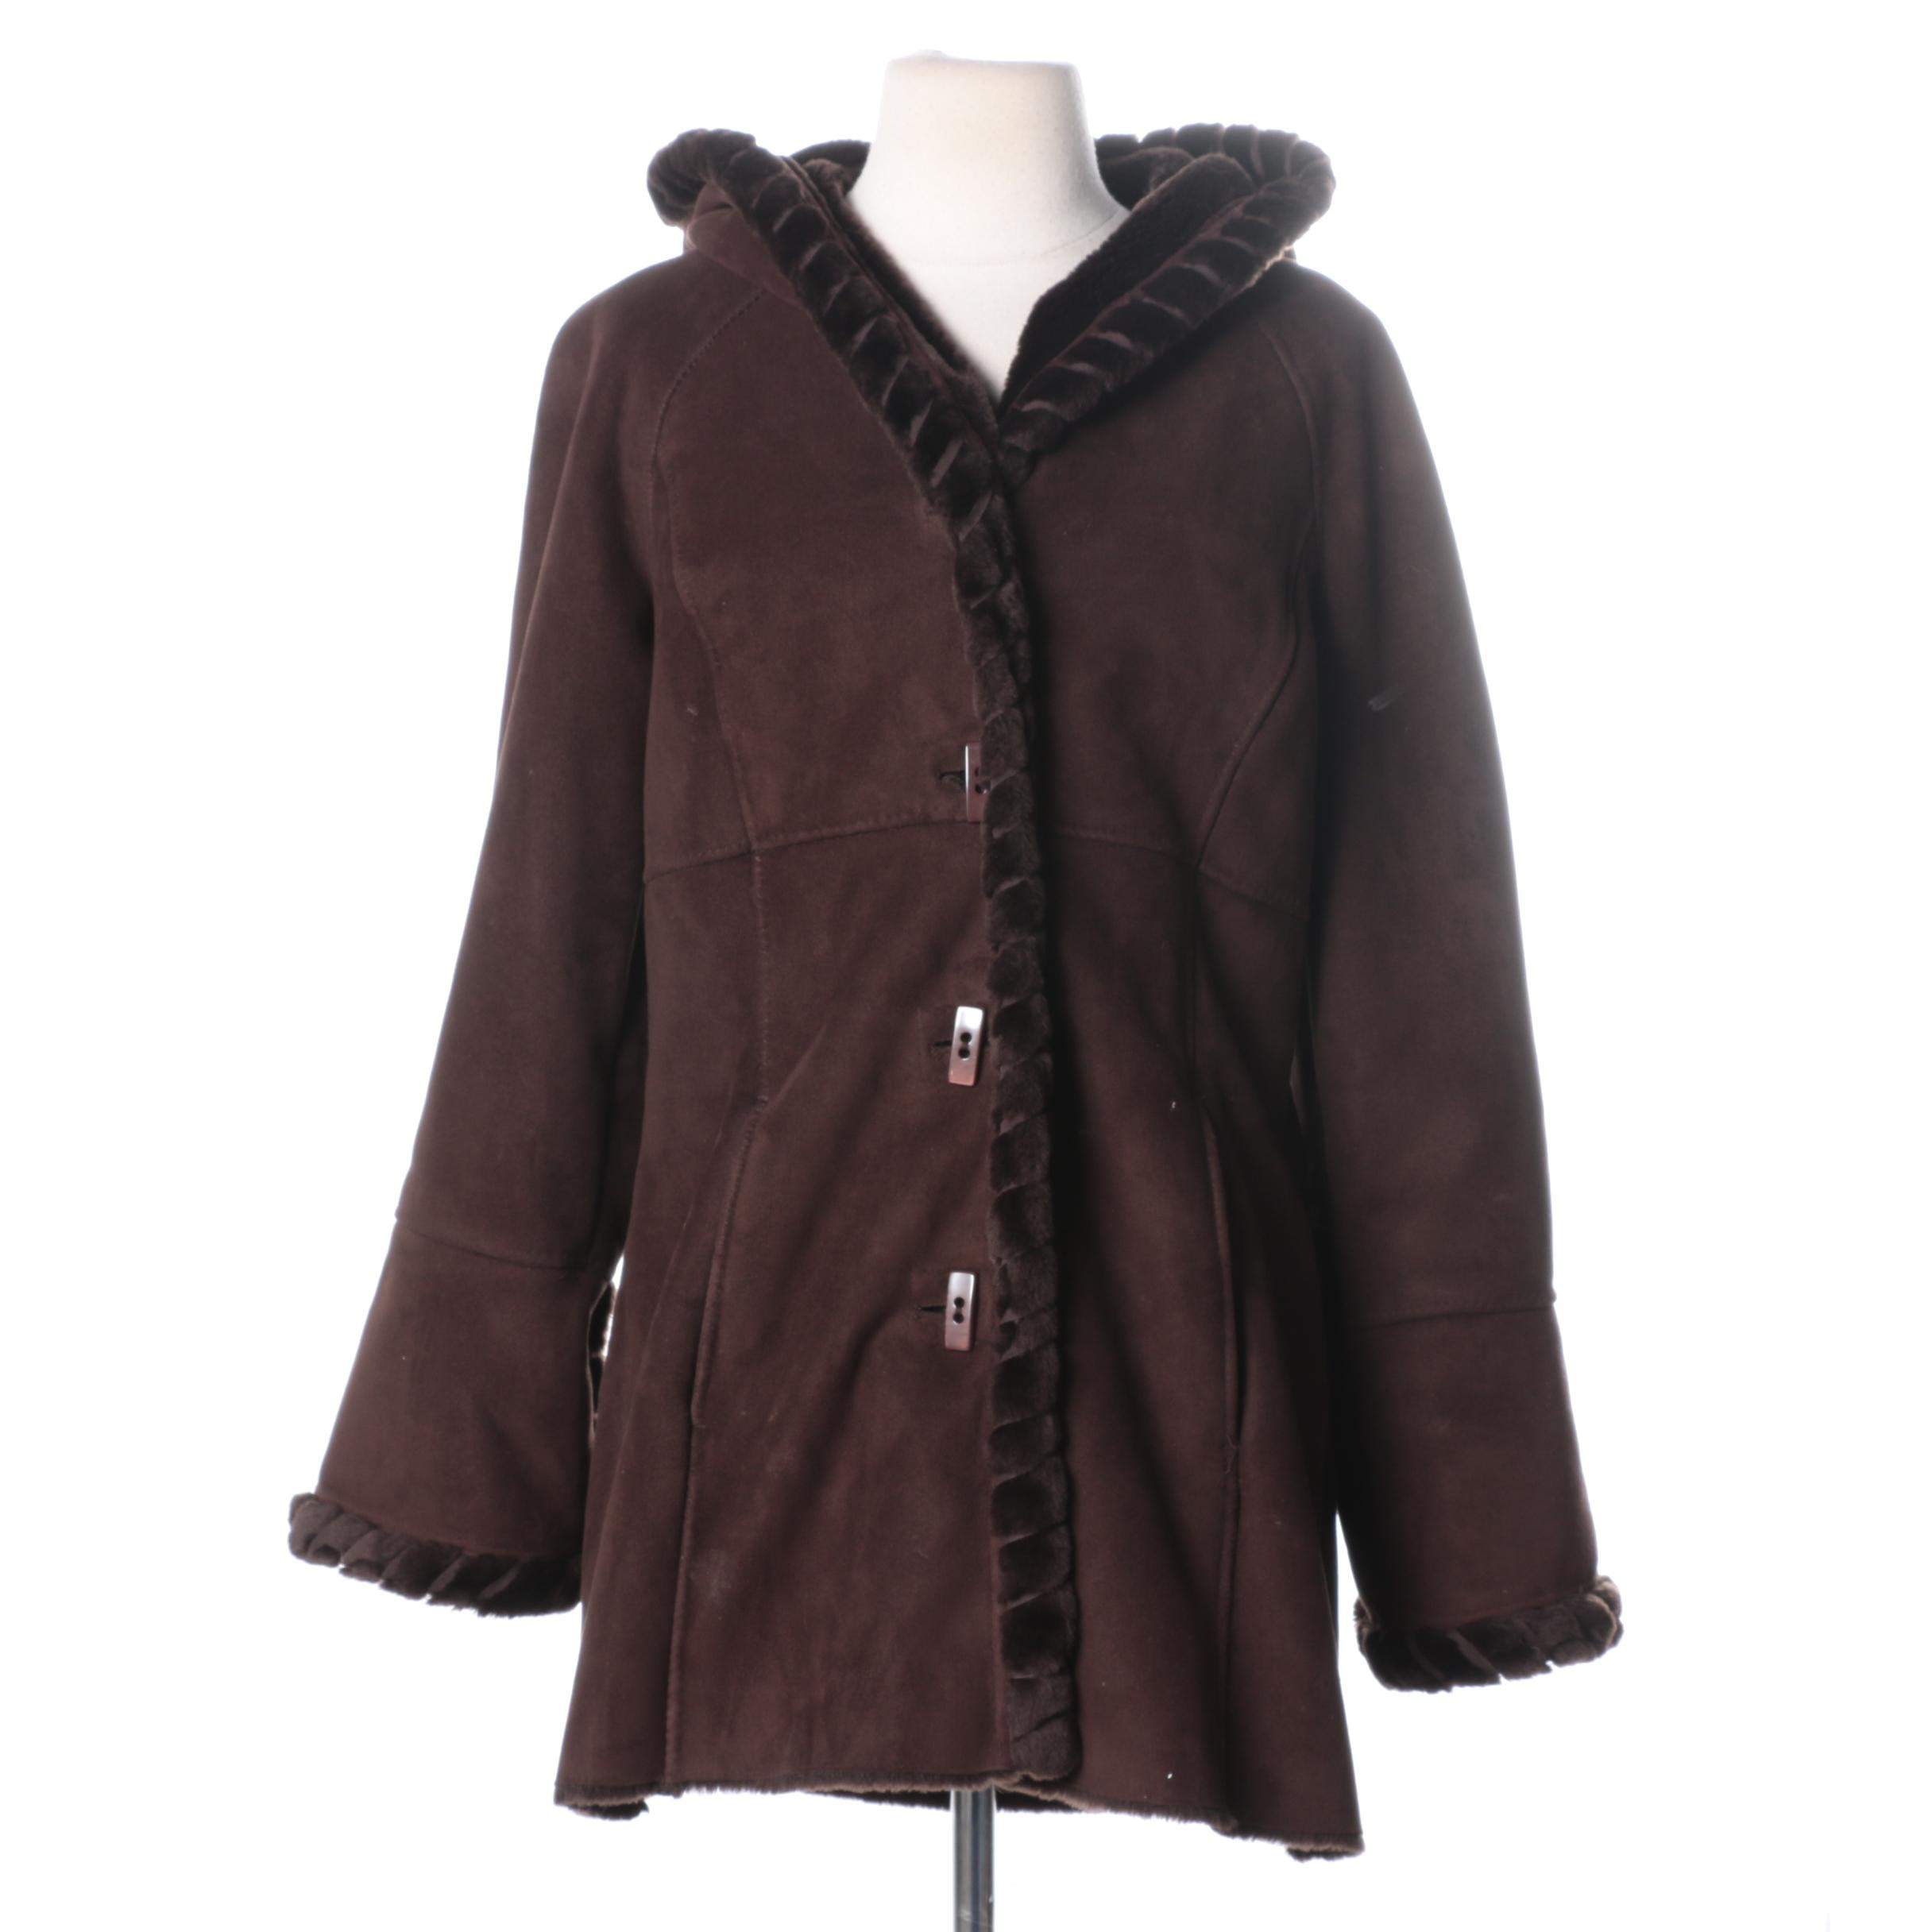 Faux Fur and Suede Brown Coat by Jones New York